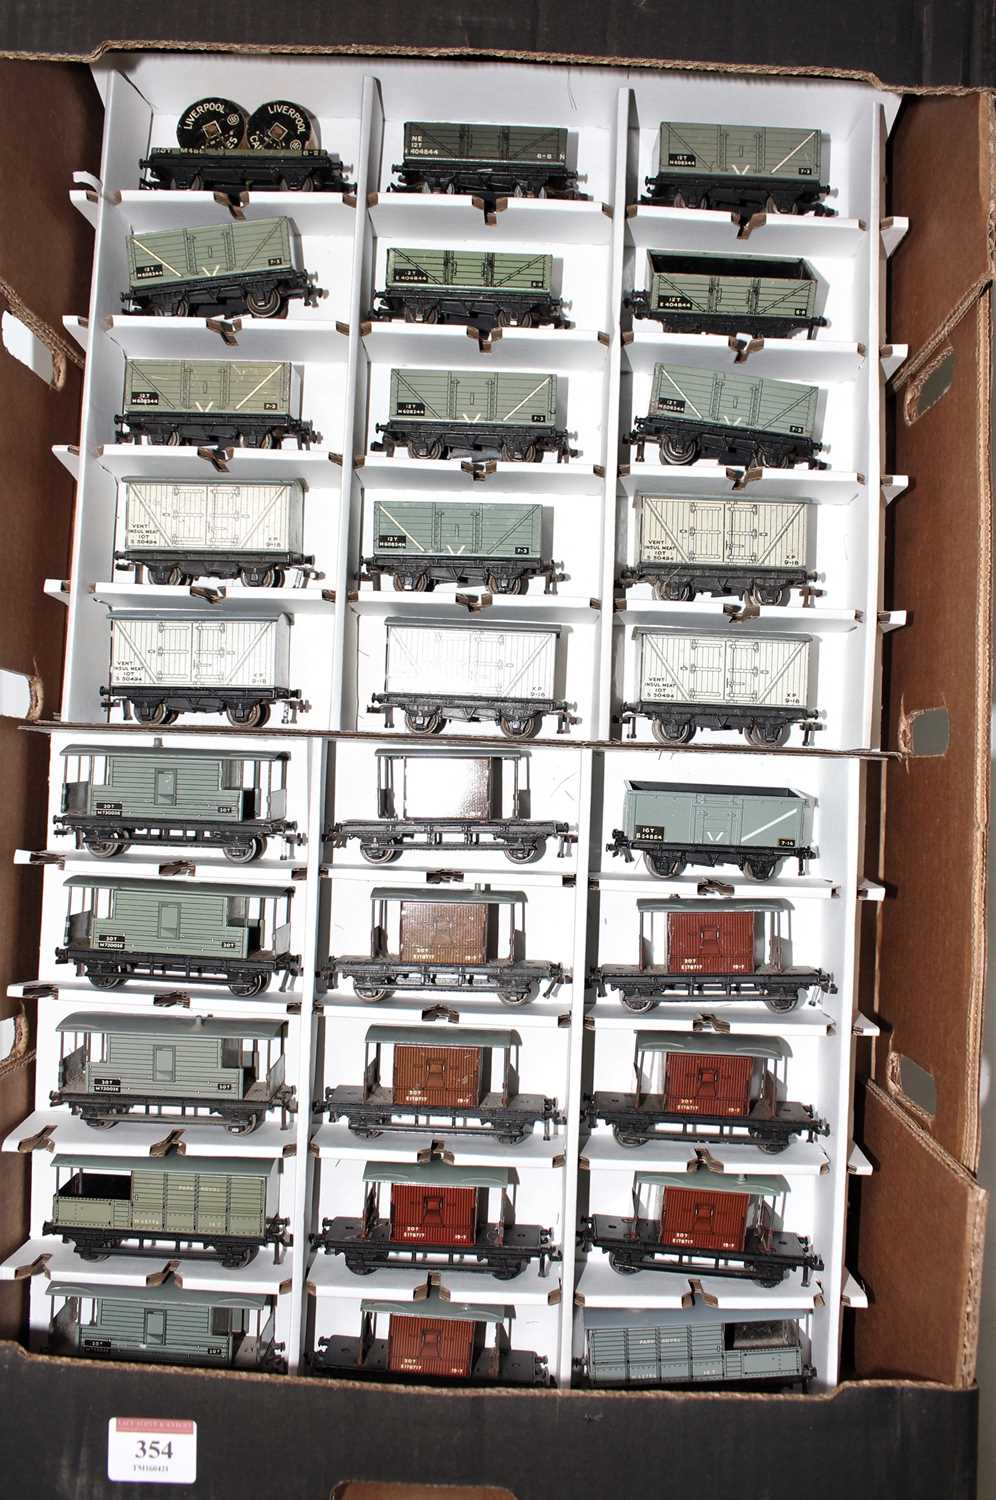 49 Hornby Dublo tinplate/diecast Post War wagons, a varied collection, quality ranging from (F-VG) - Image 2 of 2